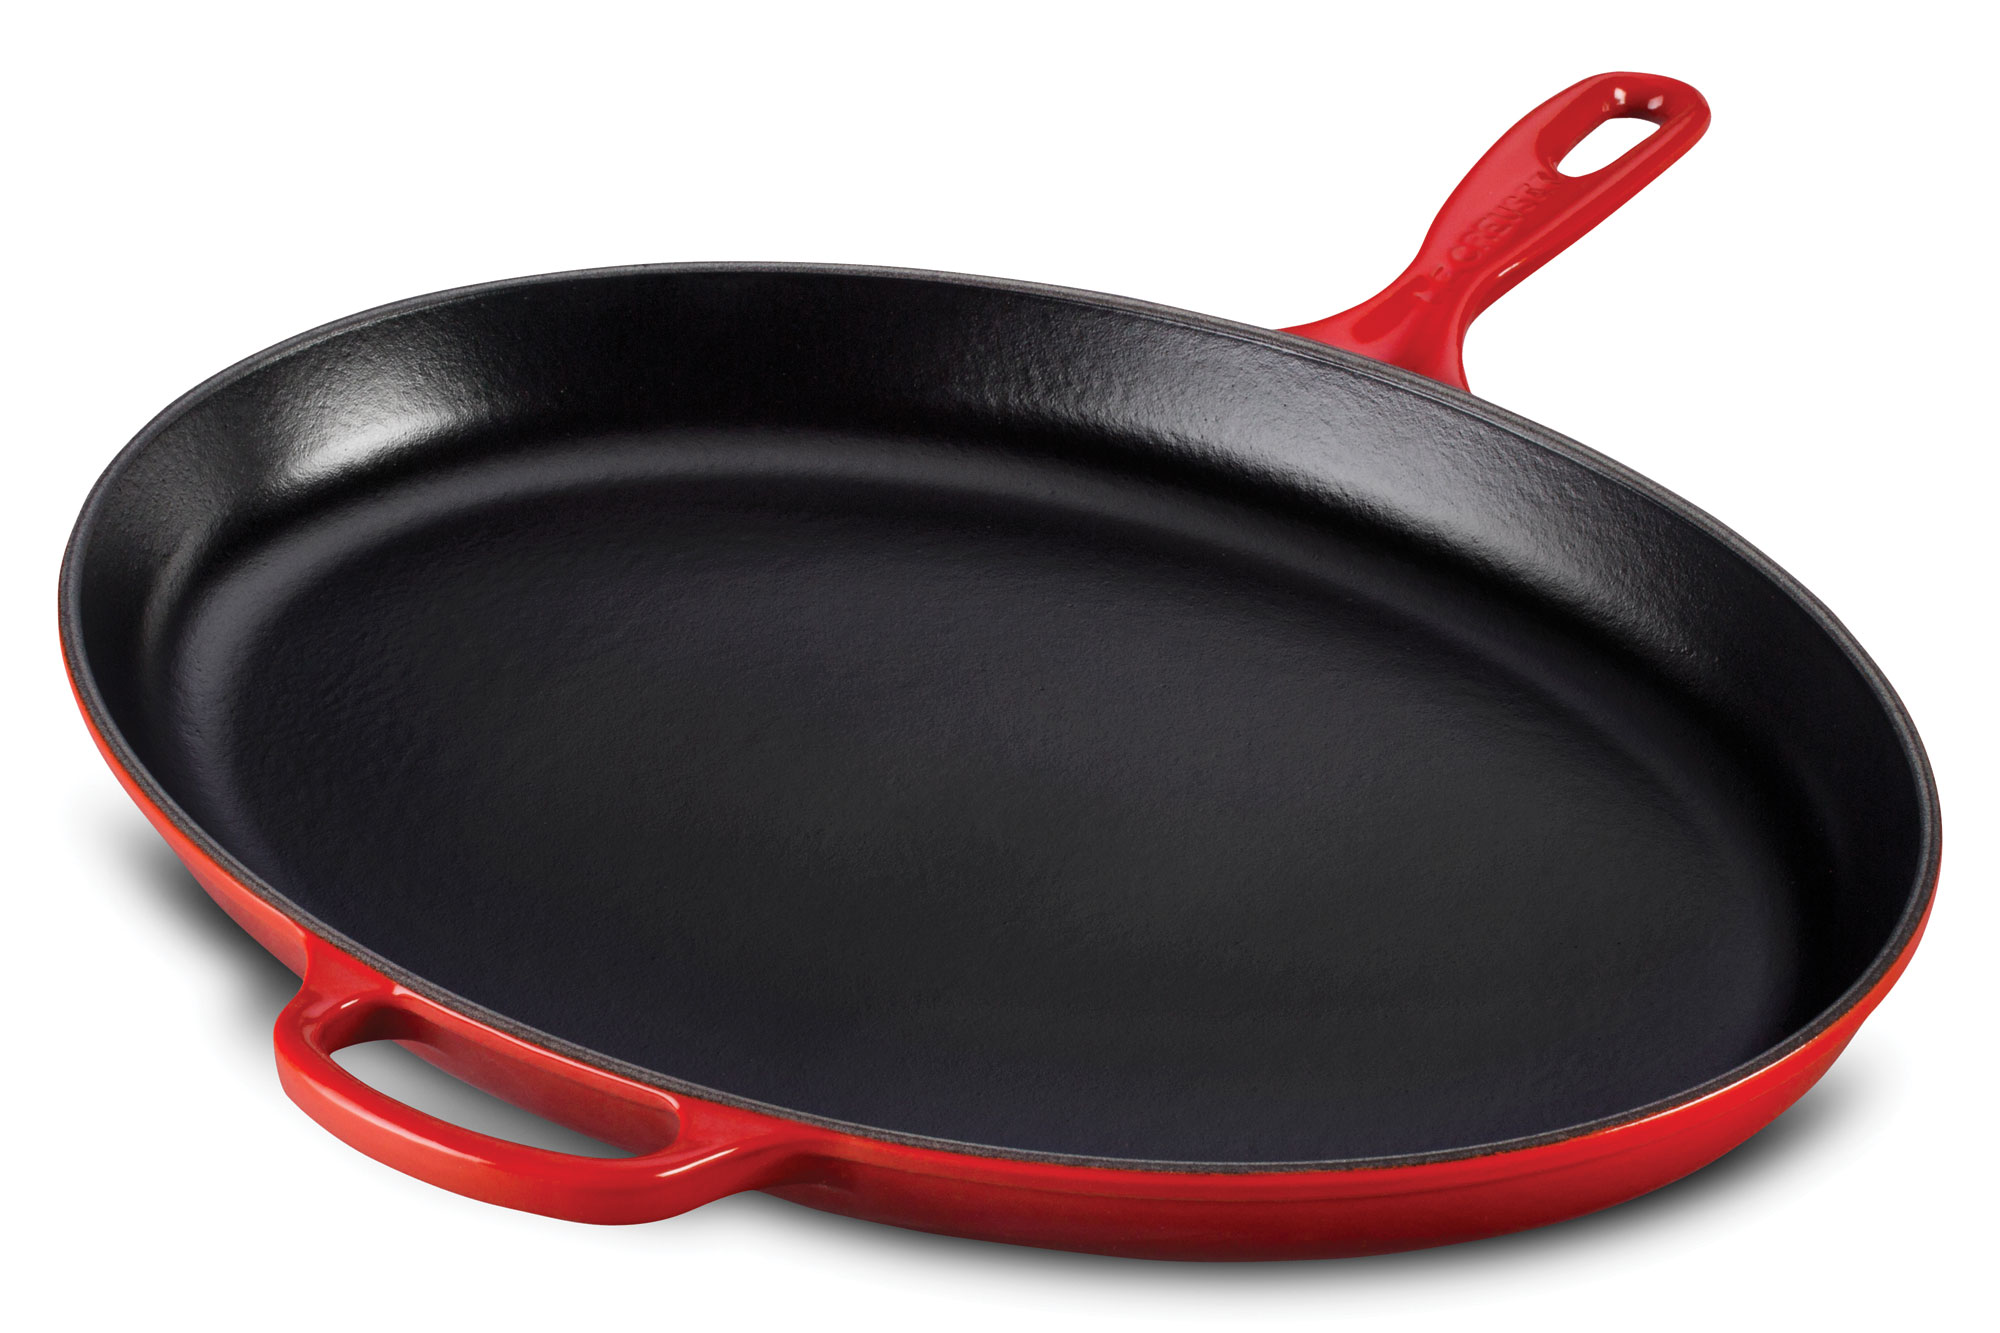 Le Creuset Signature Cast Iron Iron Handle Oval Skillet